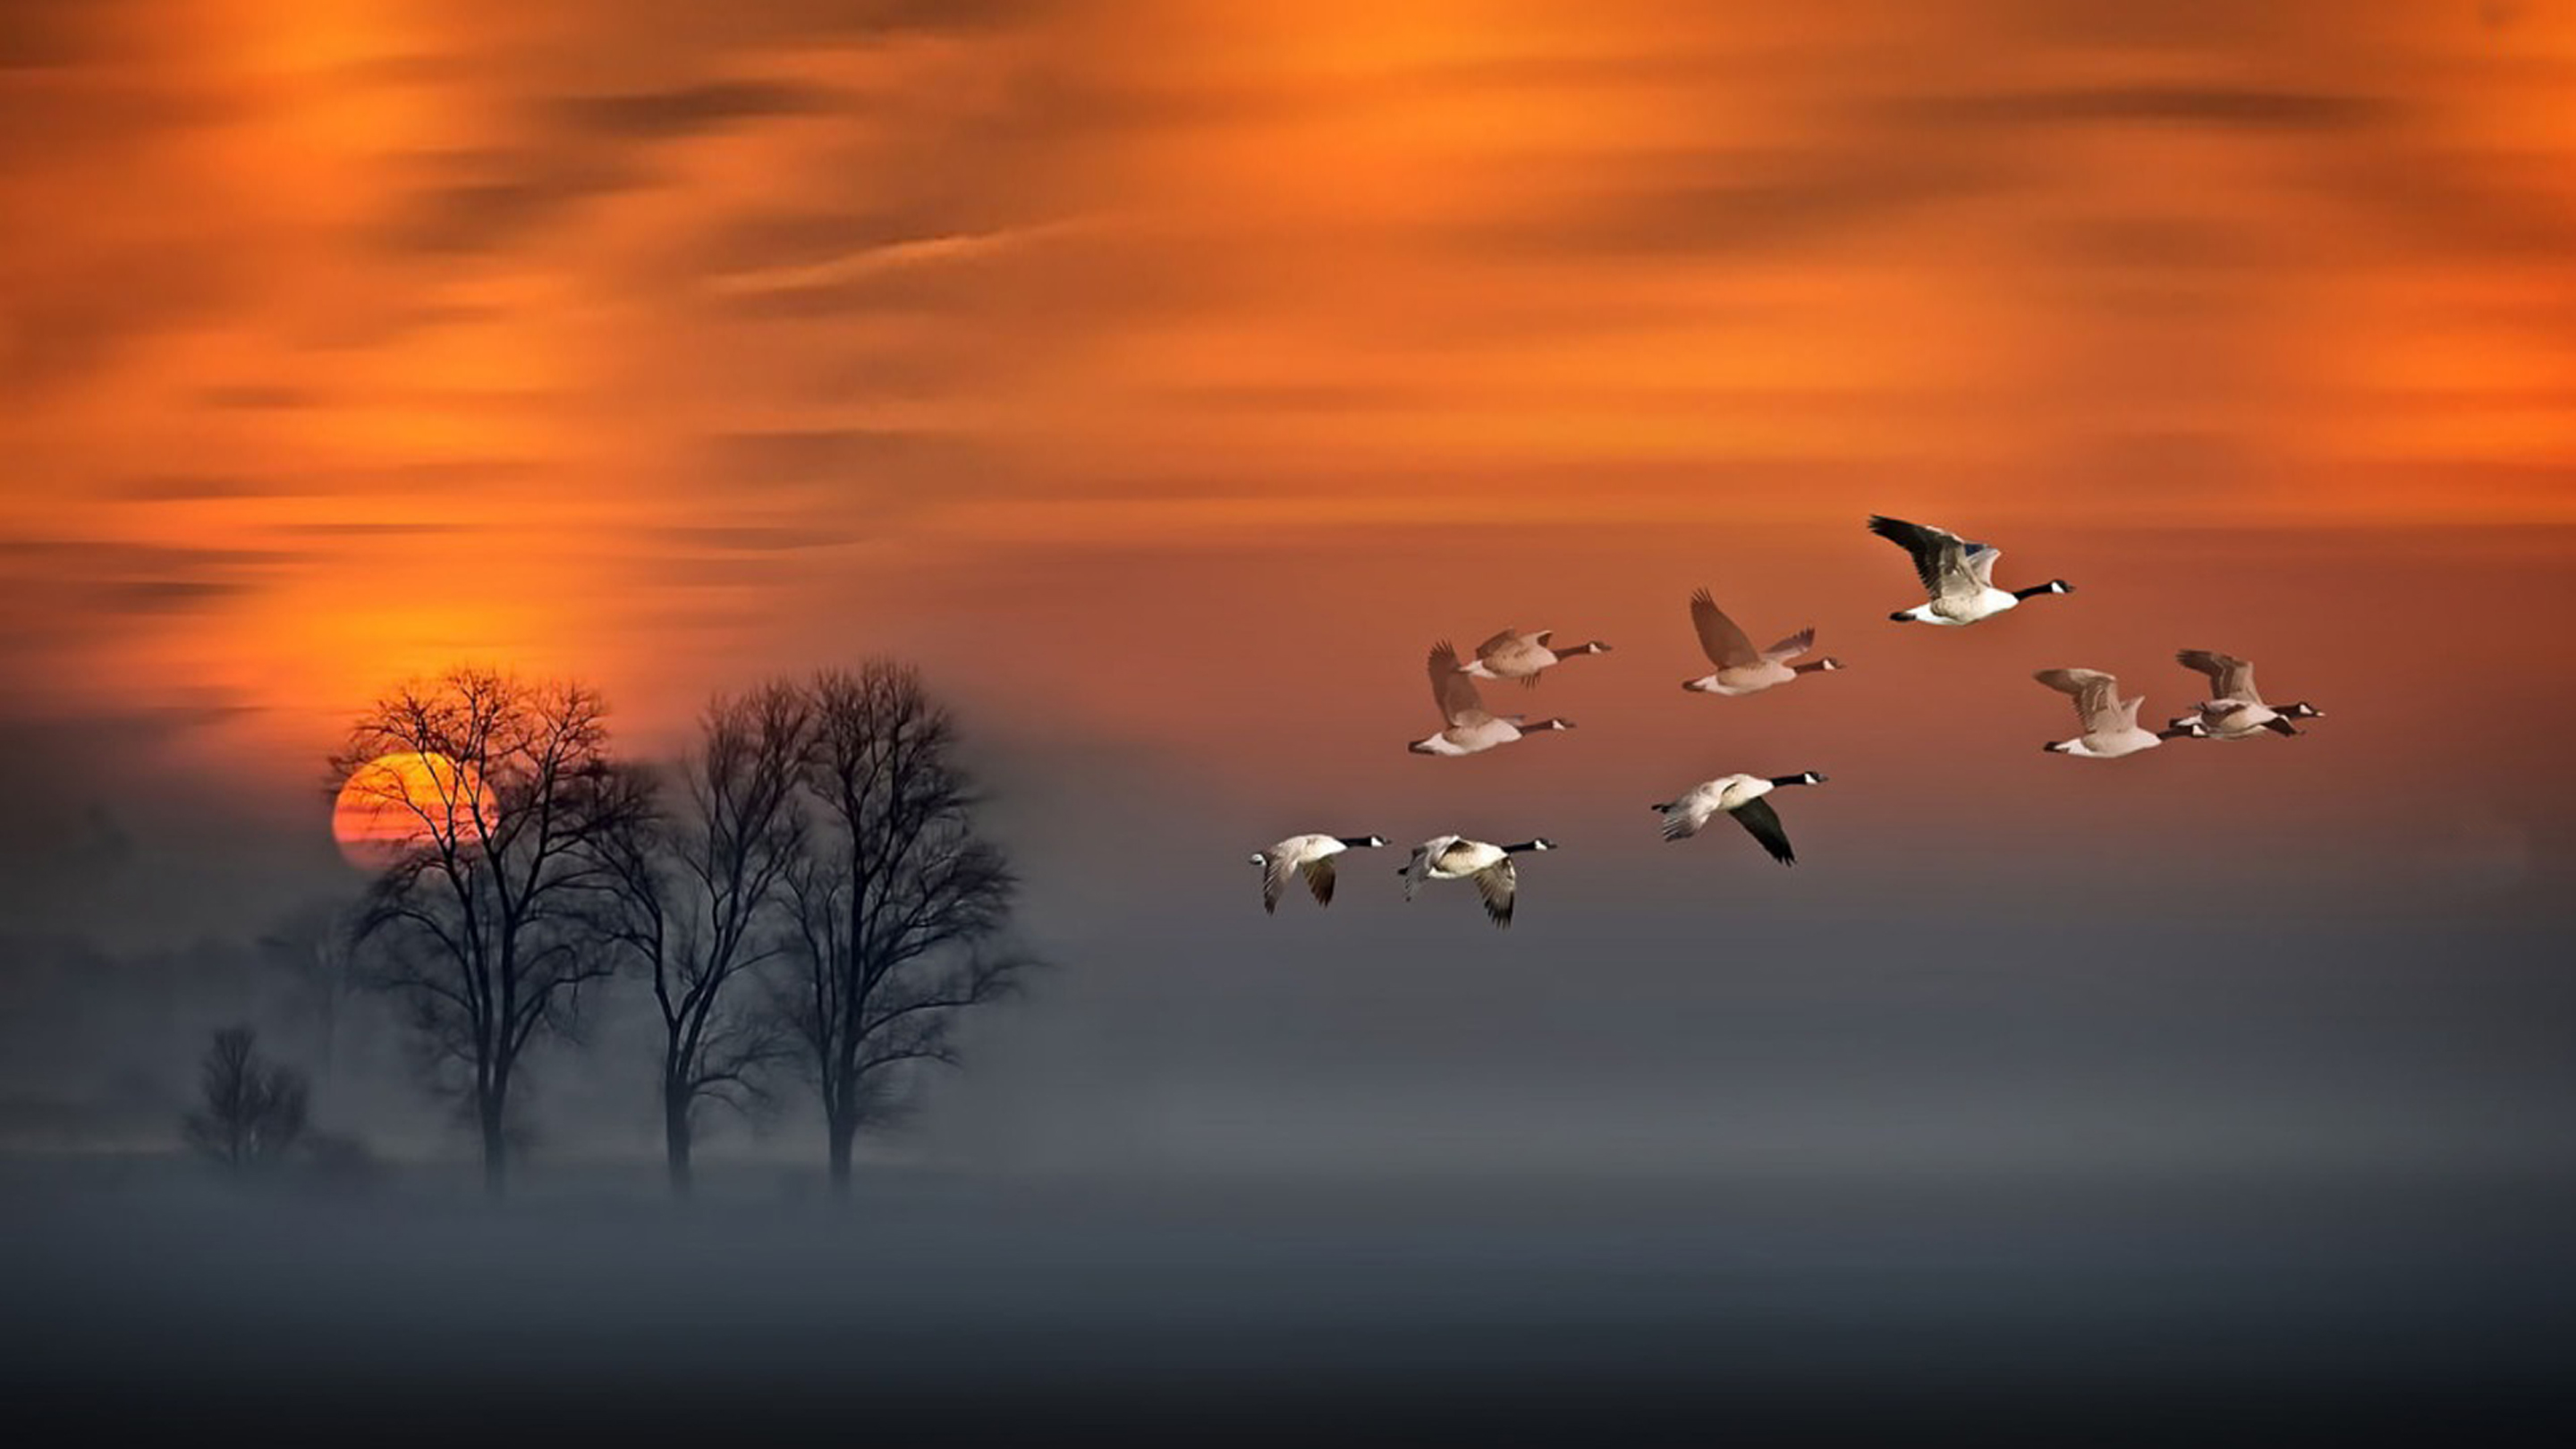 Free Full Screen Fall Wallpaper Flight Sunset Geese In Flight Fog Wood Red Sky Art Hd